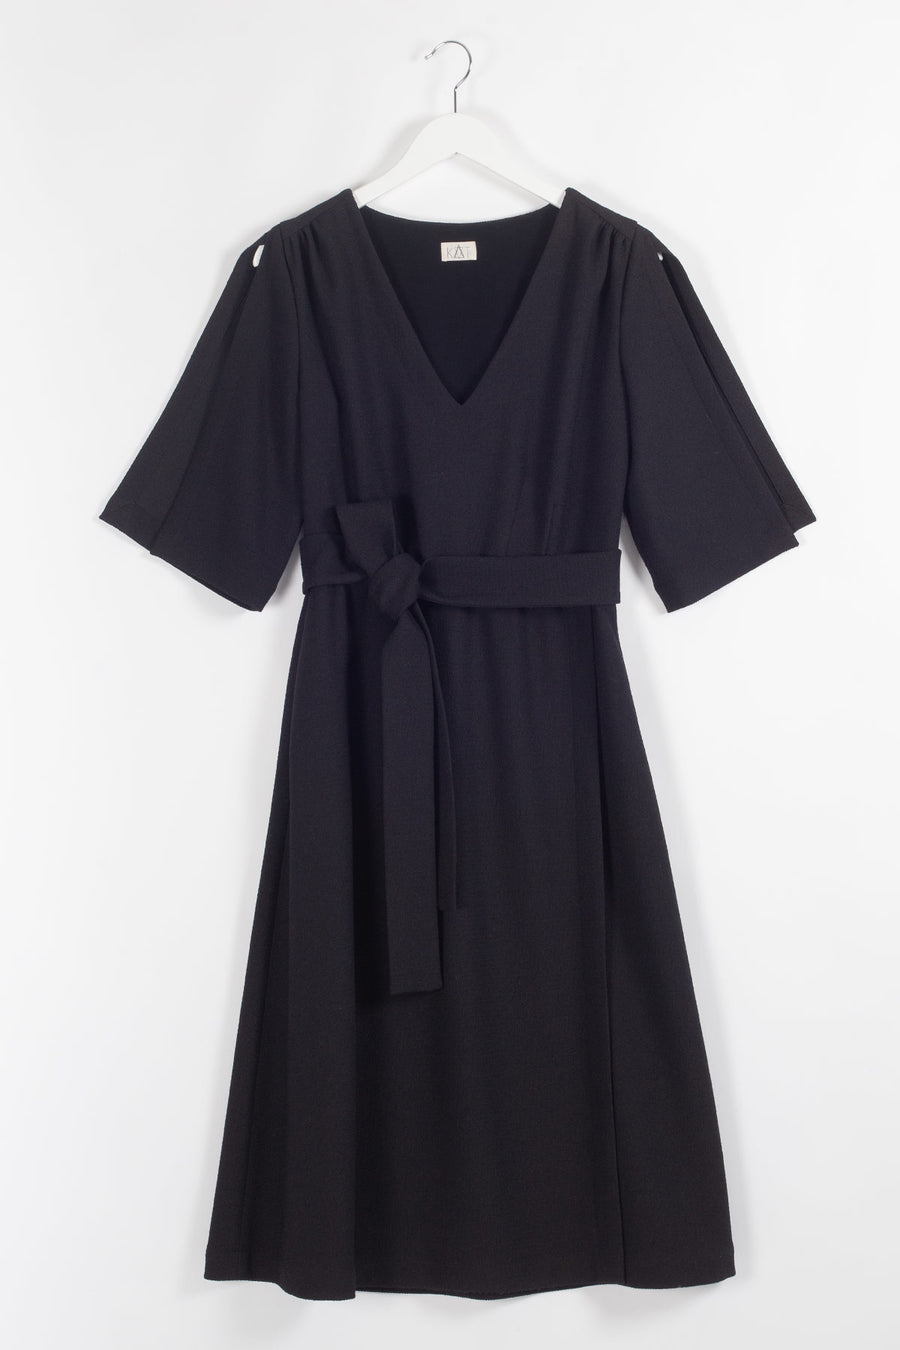 AGNES Belted Woolen A-line Midi Dress - Black